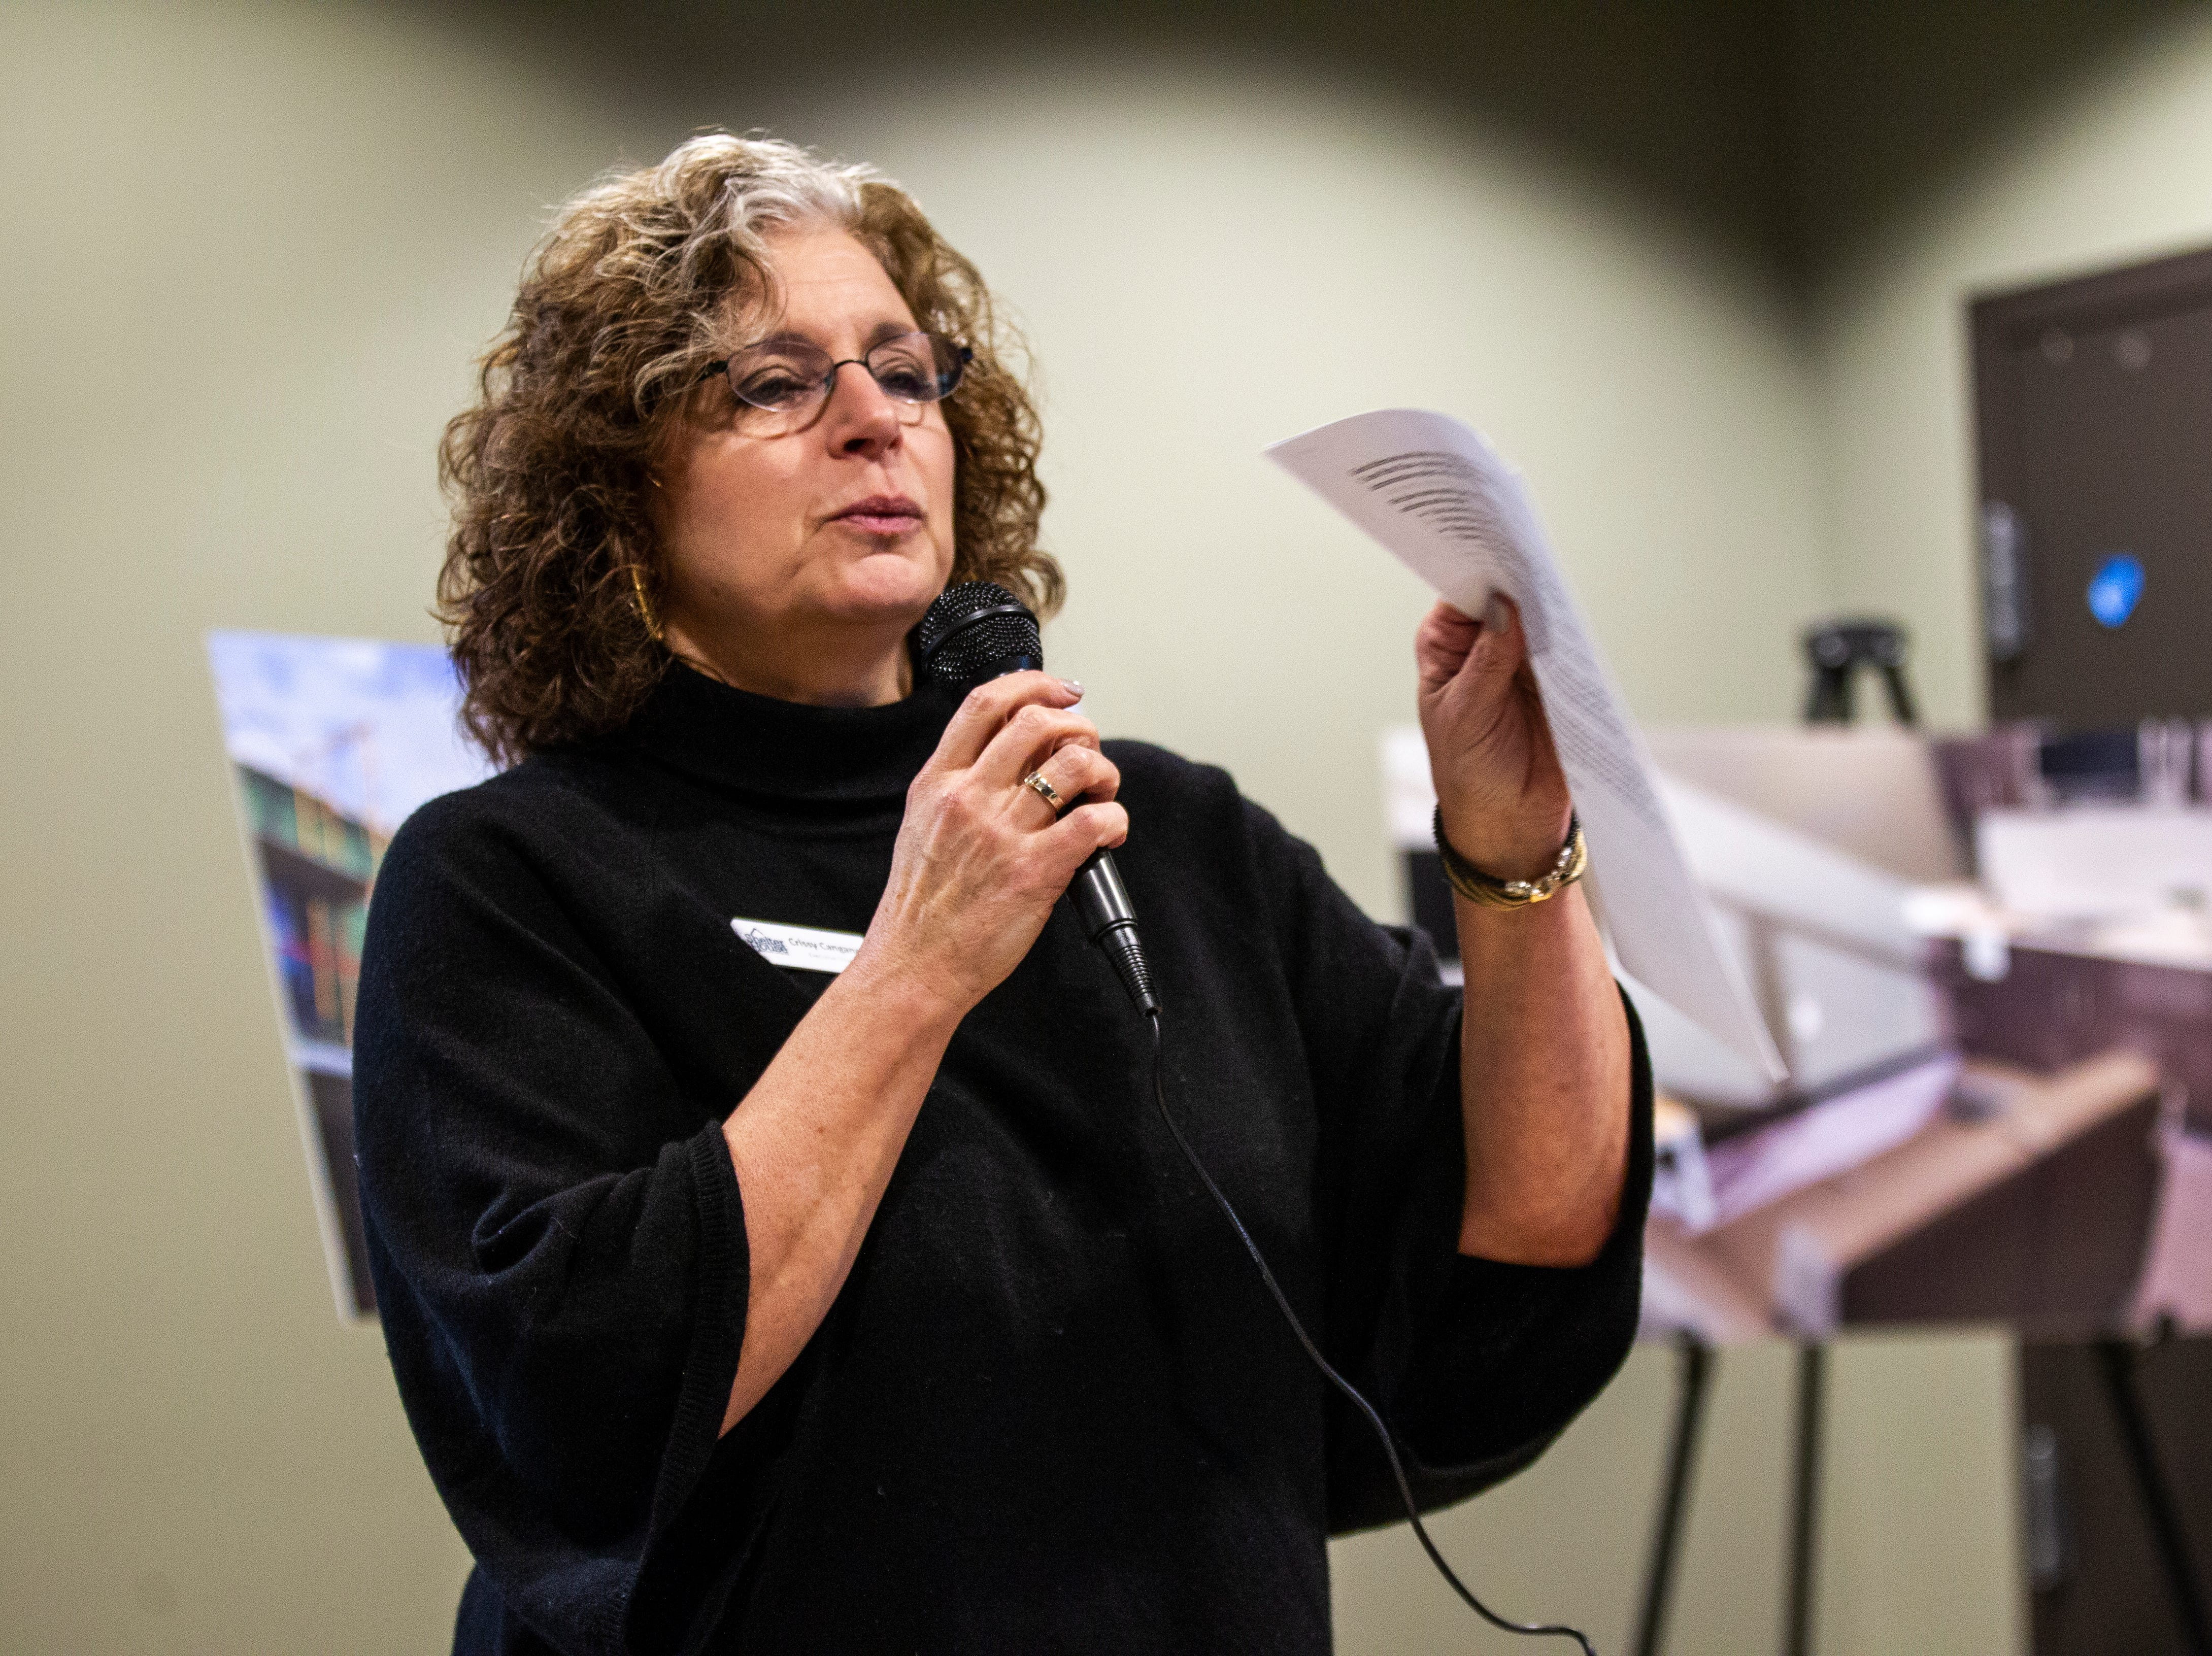 Shelter House Executive Director Crissy Canganelli speaks to community members during a tour of the newly completed homeless housing apartment complex on Wednesday, Jan. 16, 2019, at Cross Park Place in Iowa City, Iowa.